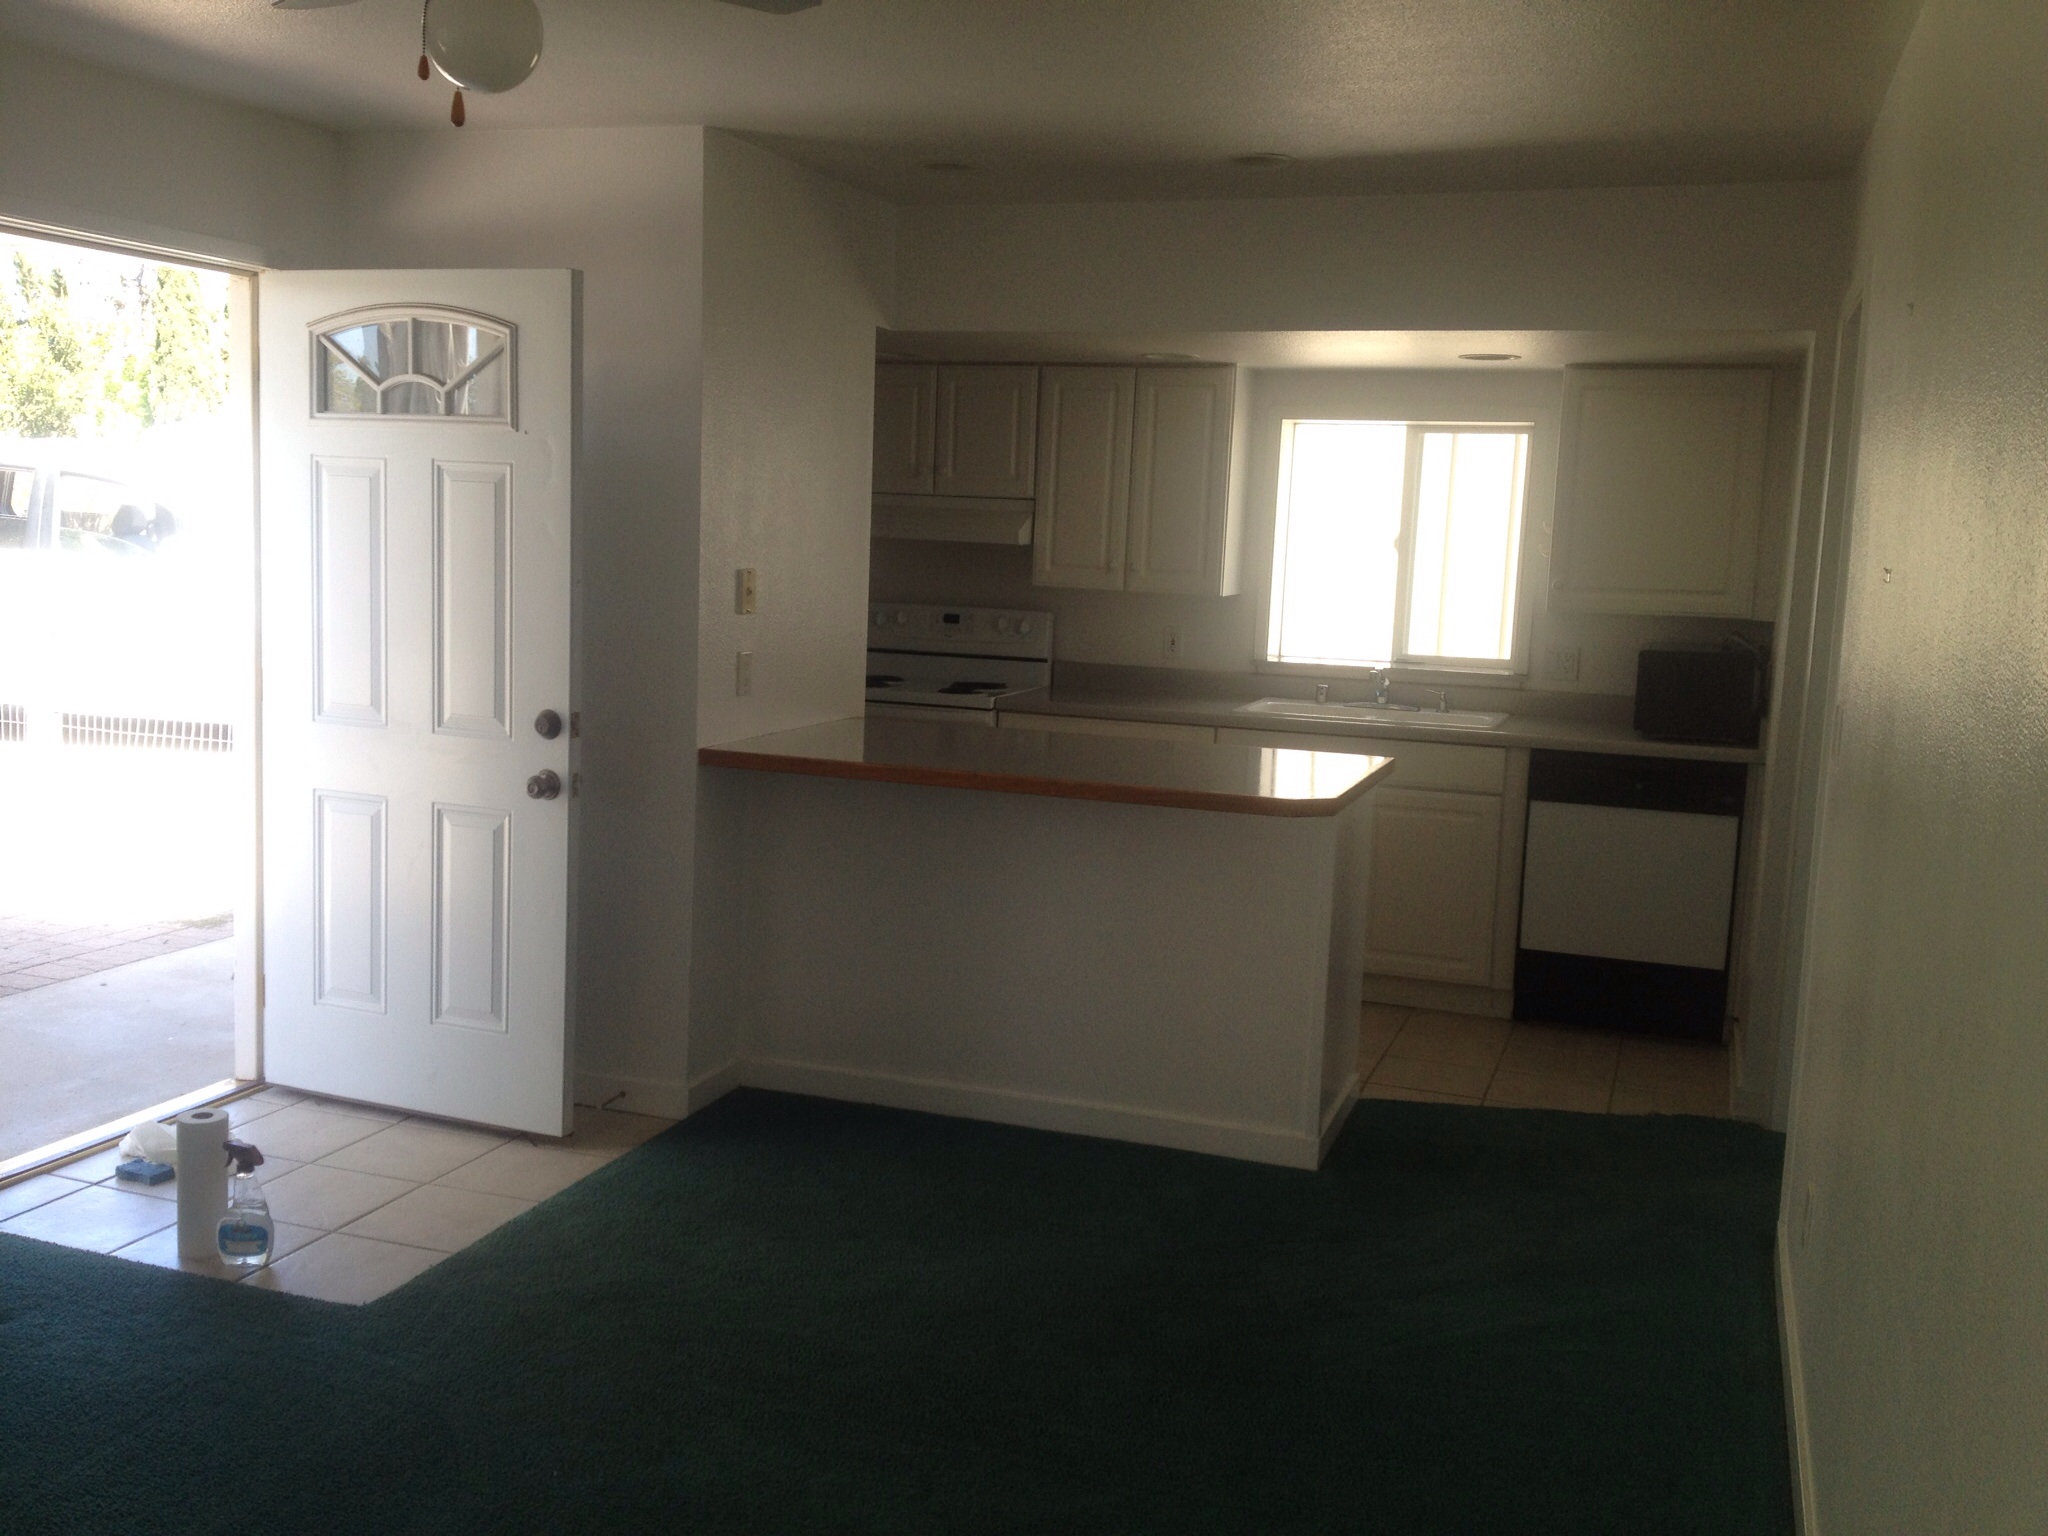 1 bedroom 1 bath granny unit san luis obispo apartment for 1 bedroom 1 bath